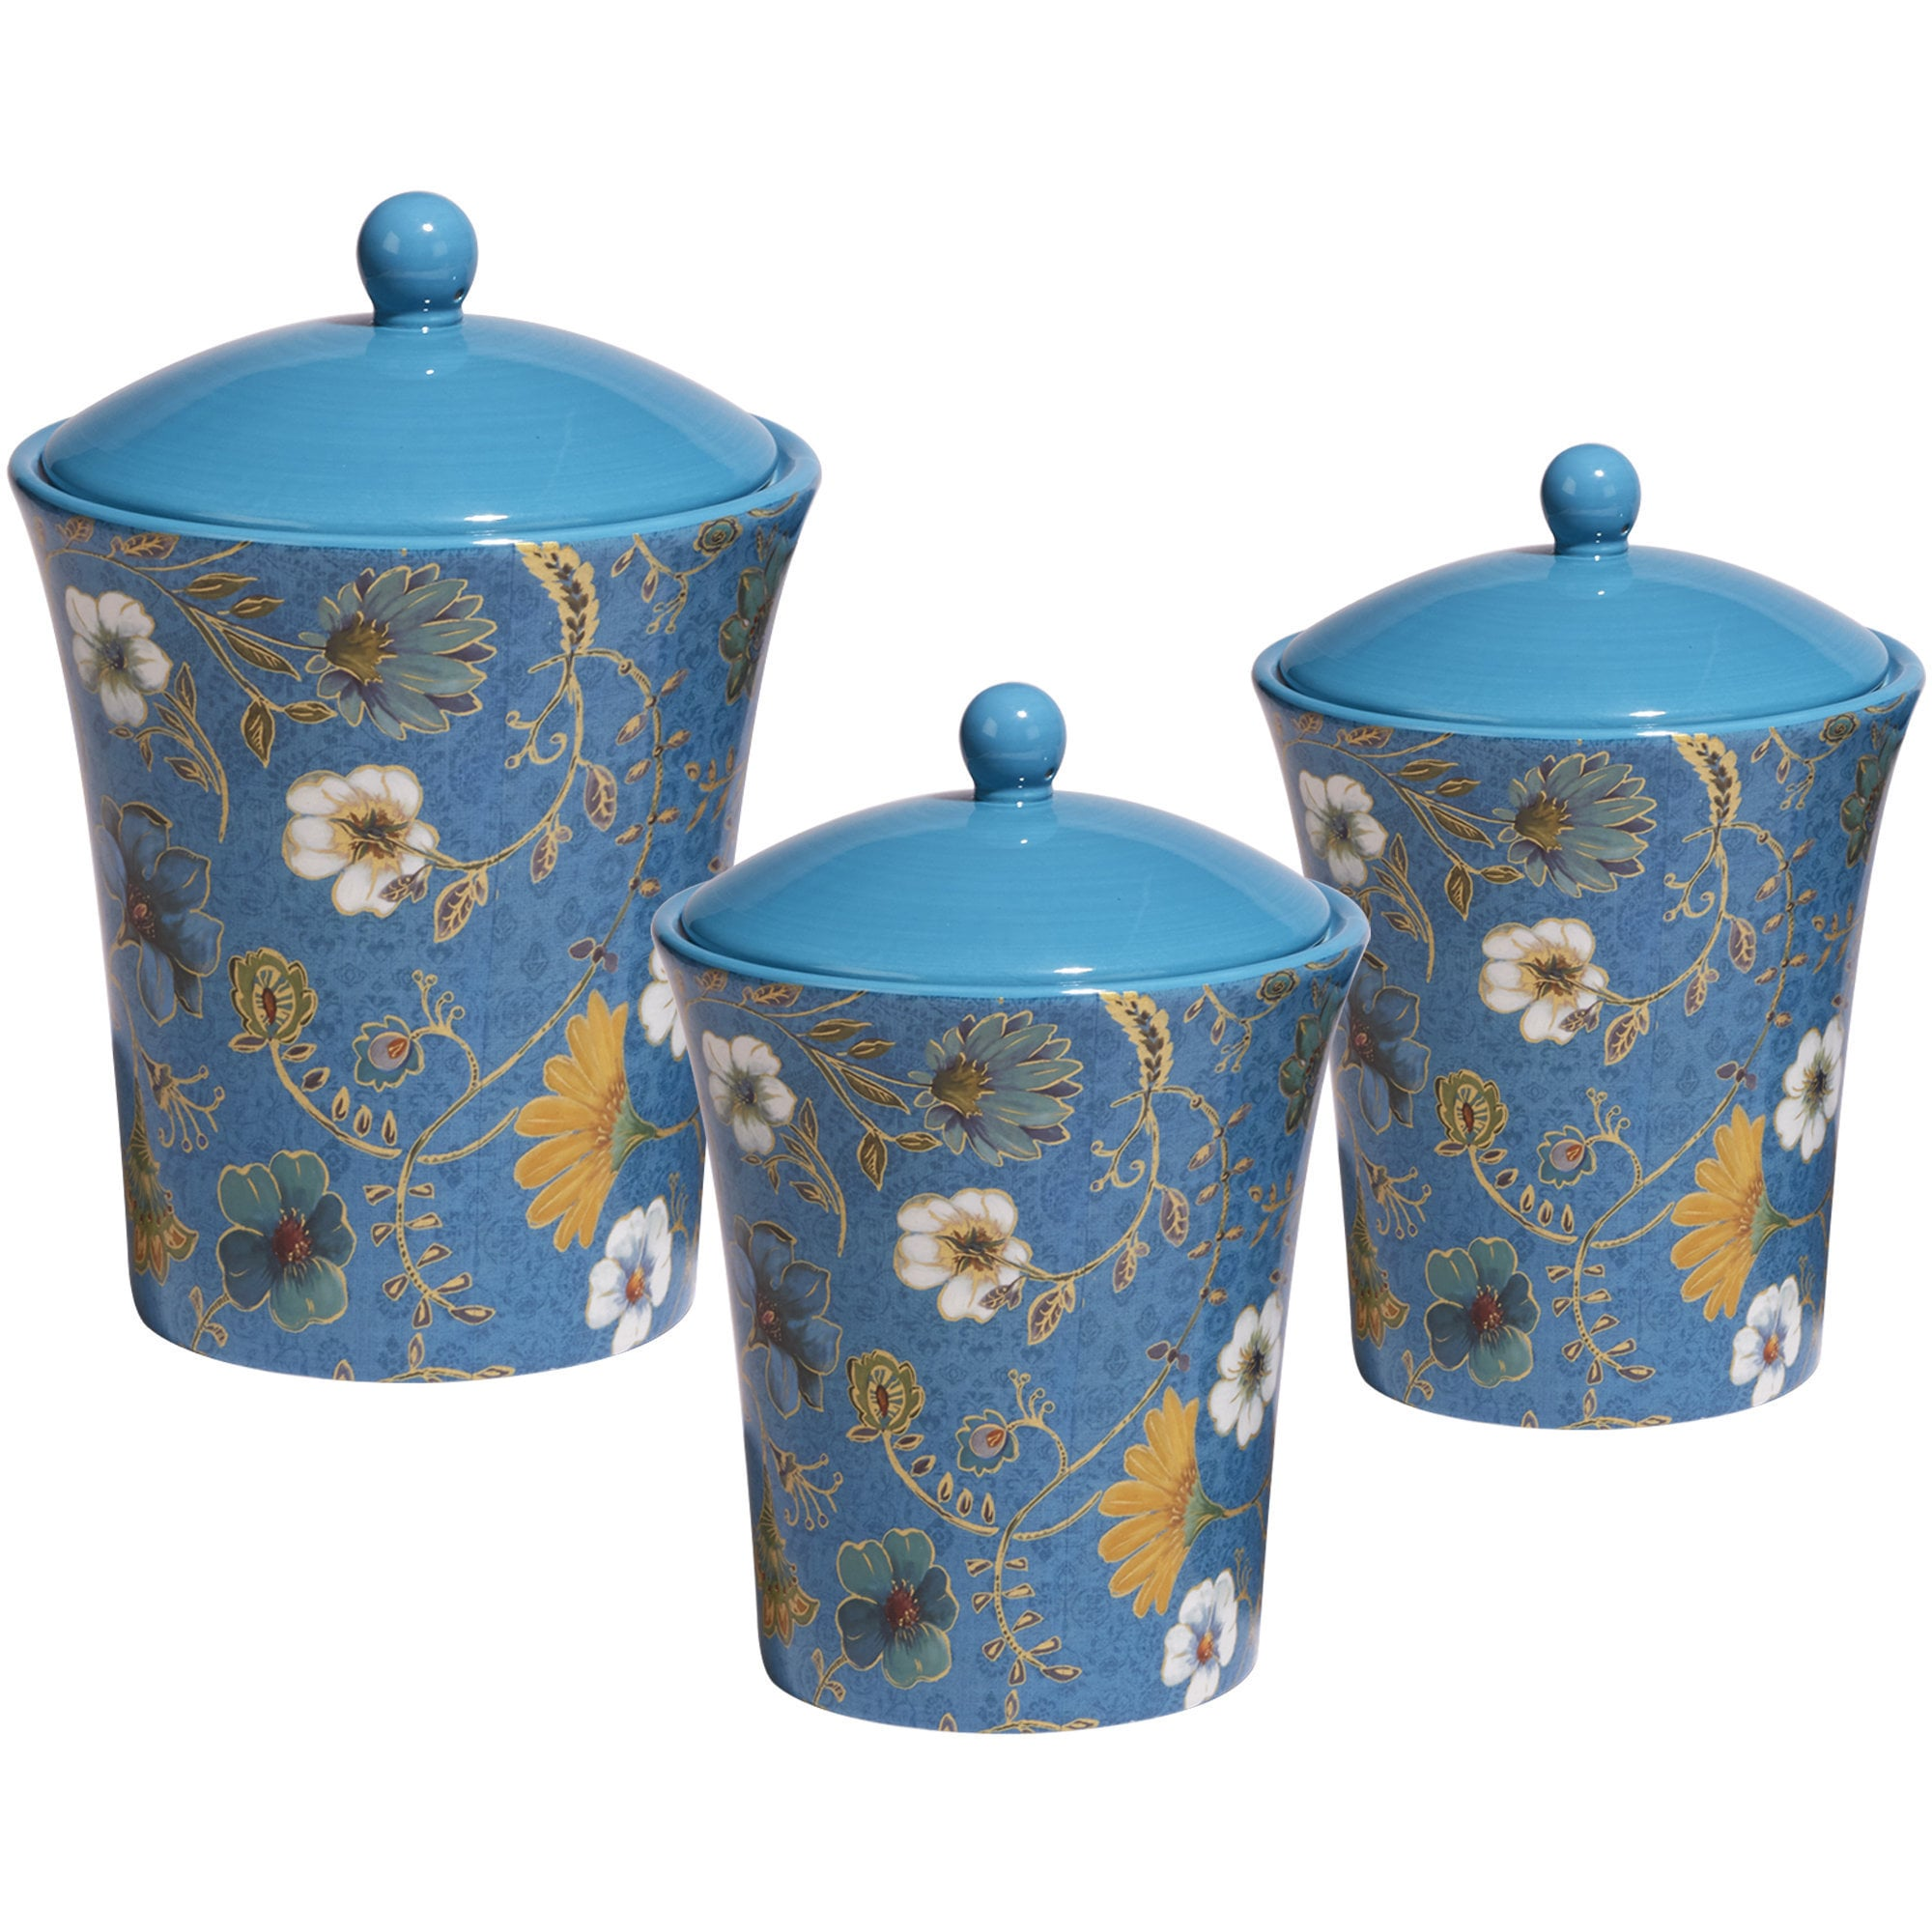 Shop Certified International Exotic Garden Blue Ceramic Hand-painted ...